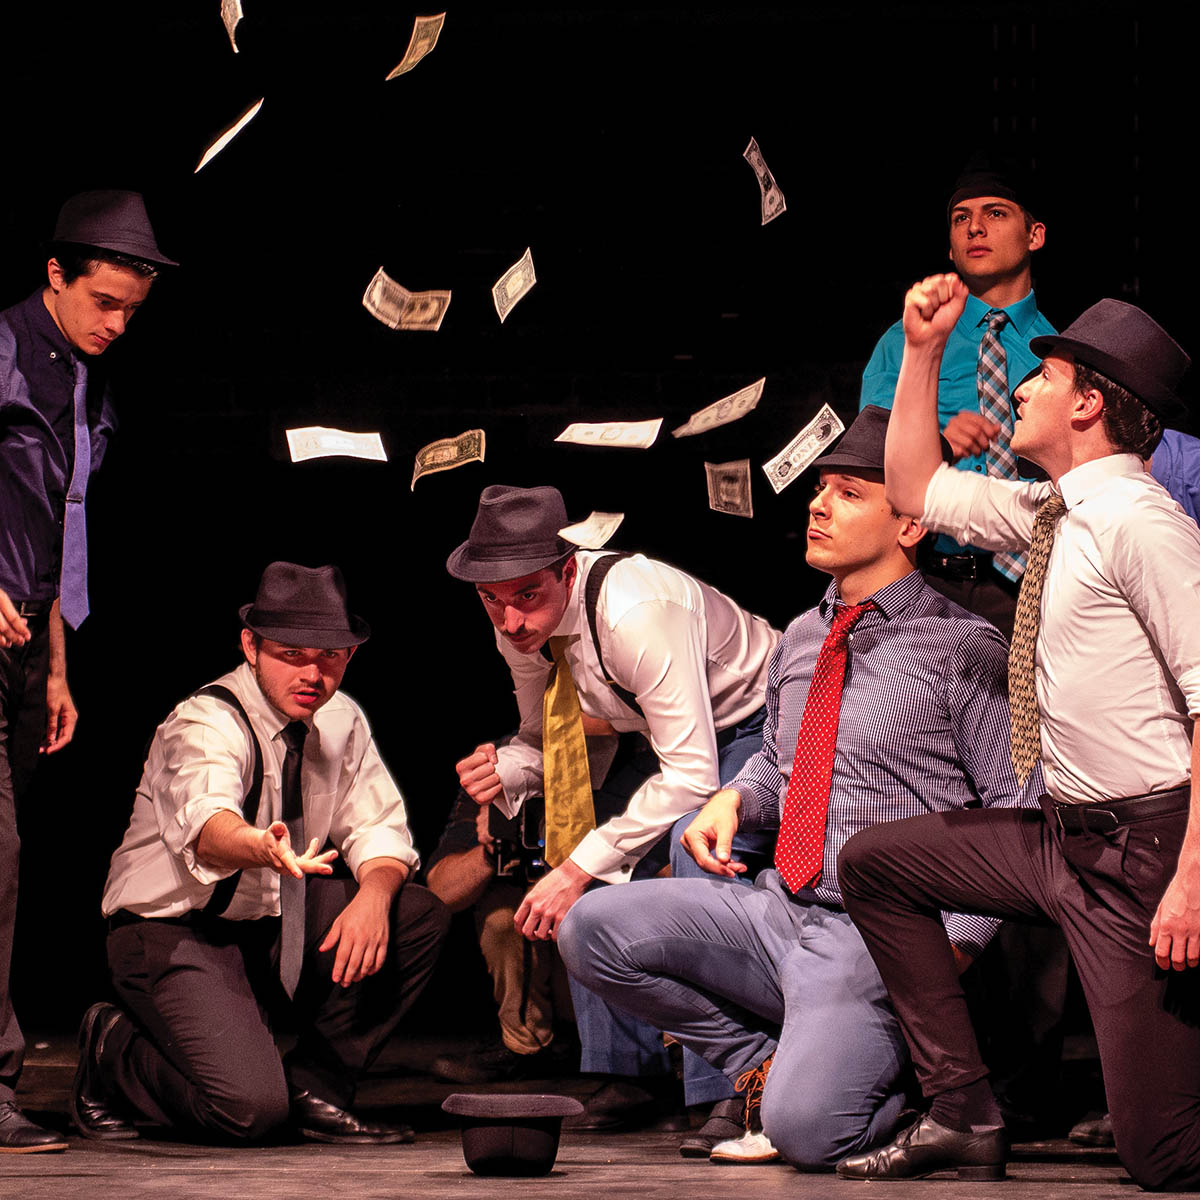 A Peoples Bank Theatre performance of Guys and Dolls